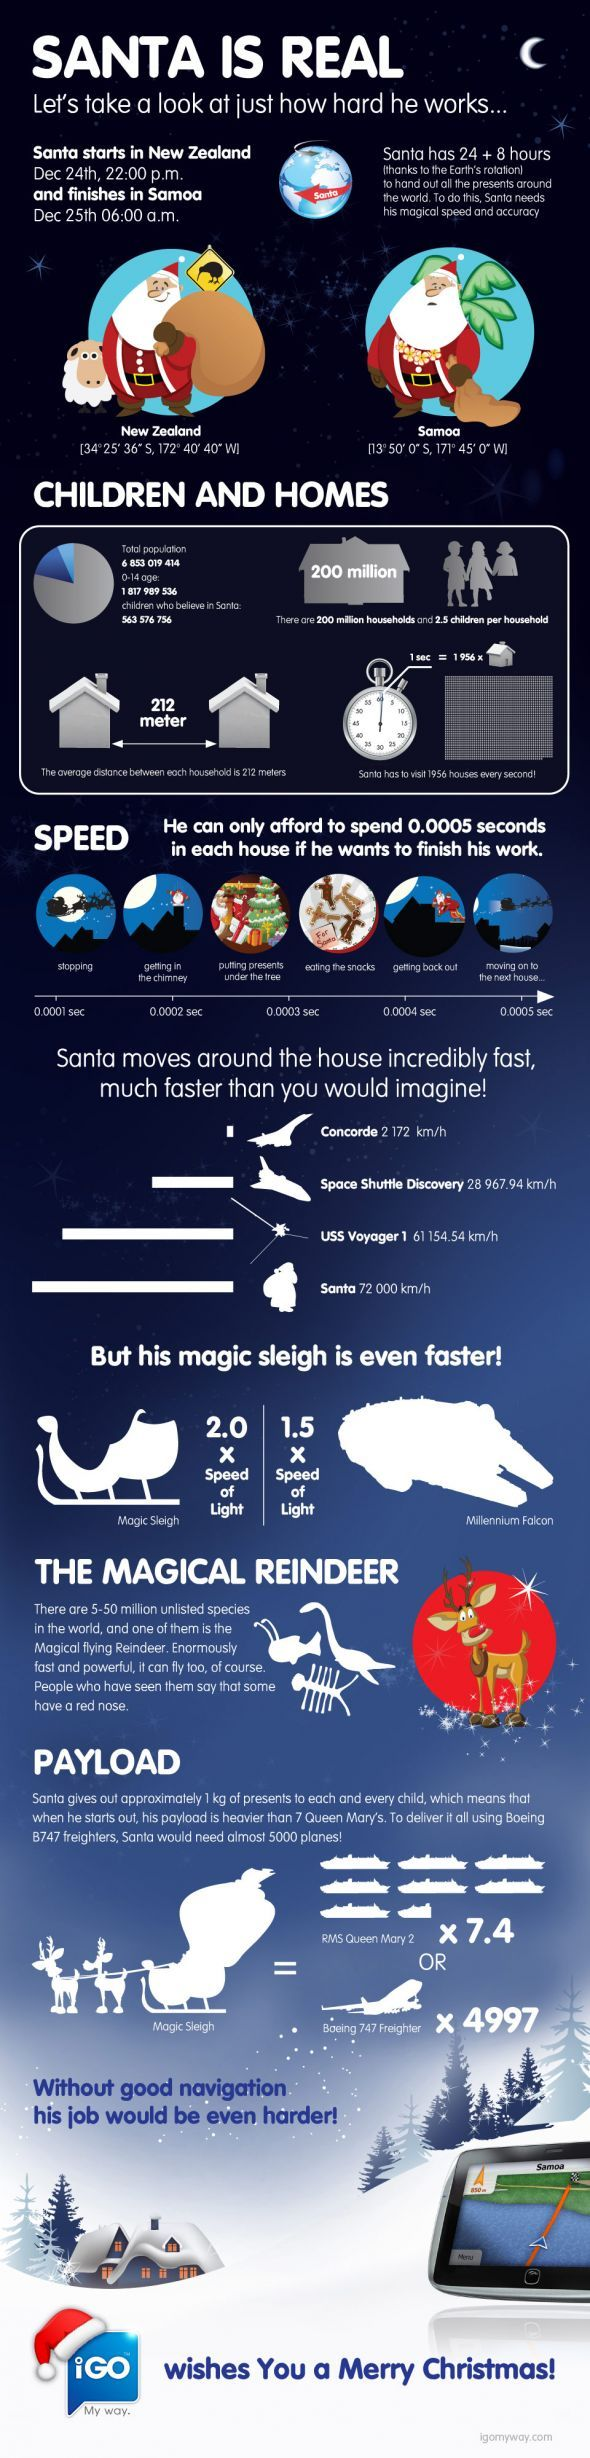 Santa is real | #santa #xmas #reindeers #christmas #fun #facts #information #design < repinned by www.BlickeDeeler.de